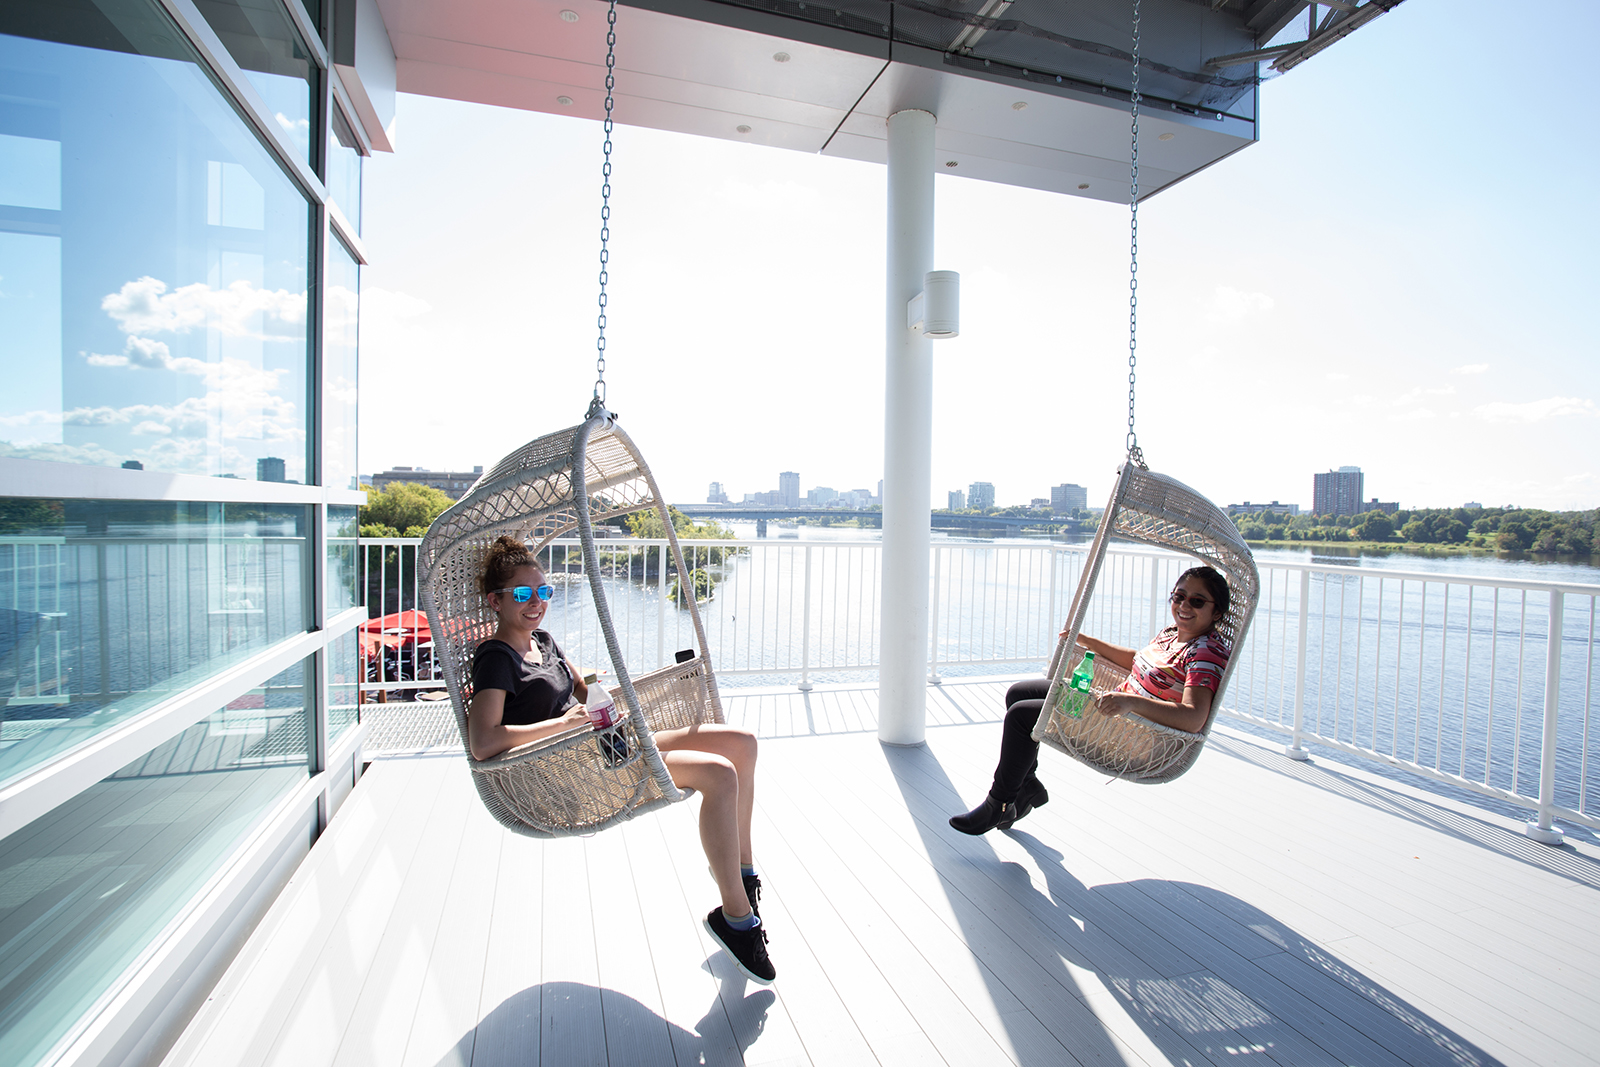 Teenage girls sit in two wicker swing chairs suspended from the roof of a balcony overlooking a river